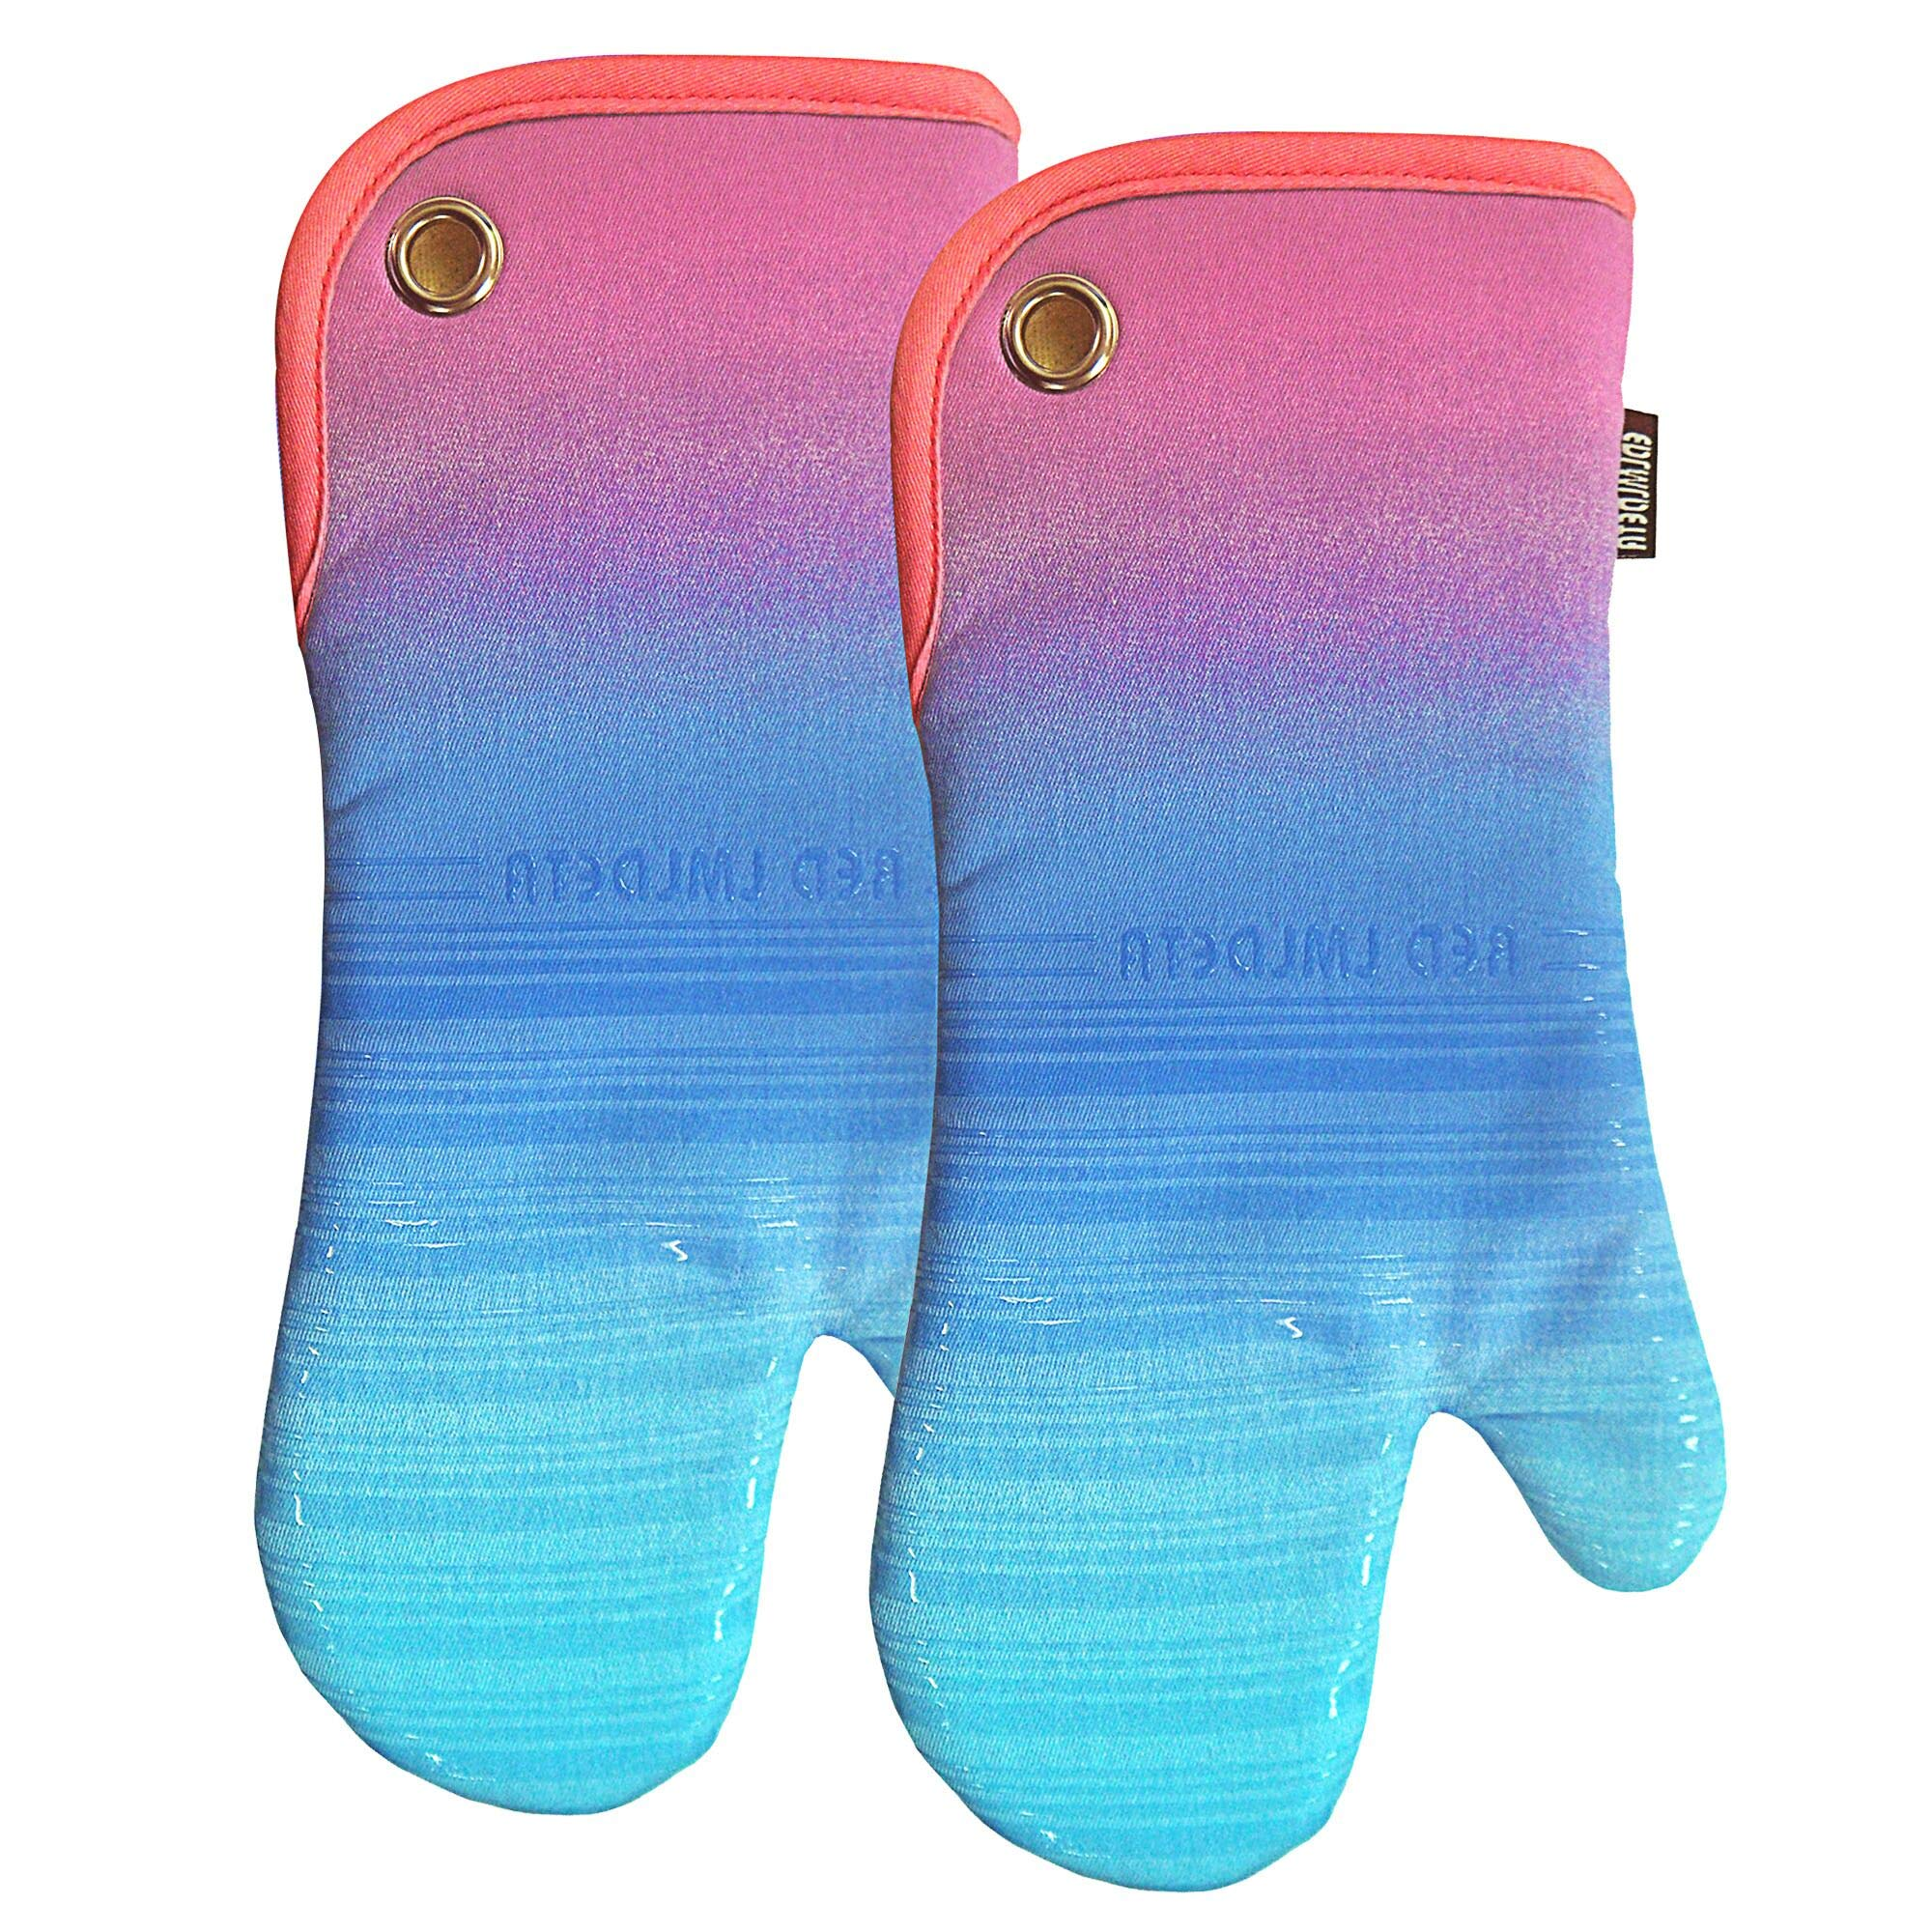 RED LMLDETA Transparent Stripe Silicone Oven Mitts/Gloves 1 Pair, Heat Resistant Non-Slip for Home Kitchen Cooking Barbecue Microwave for Women/Men Machine Washable BBQ (Gradual Purple)